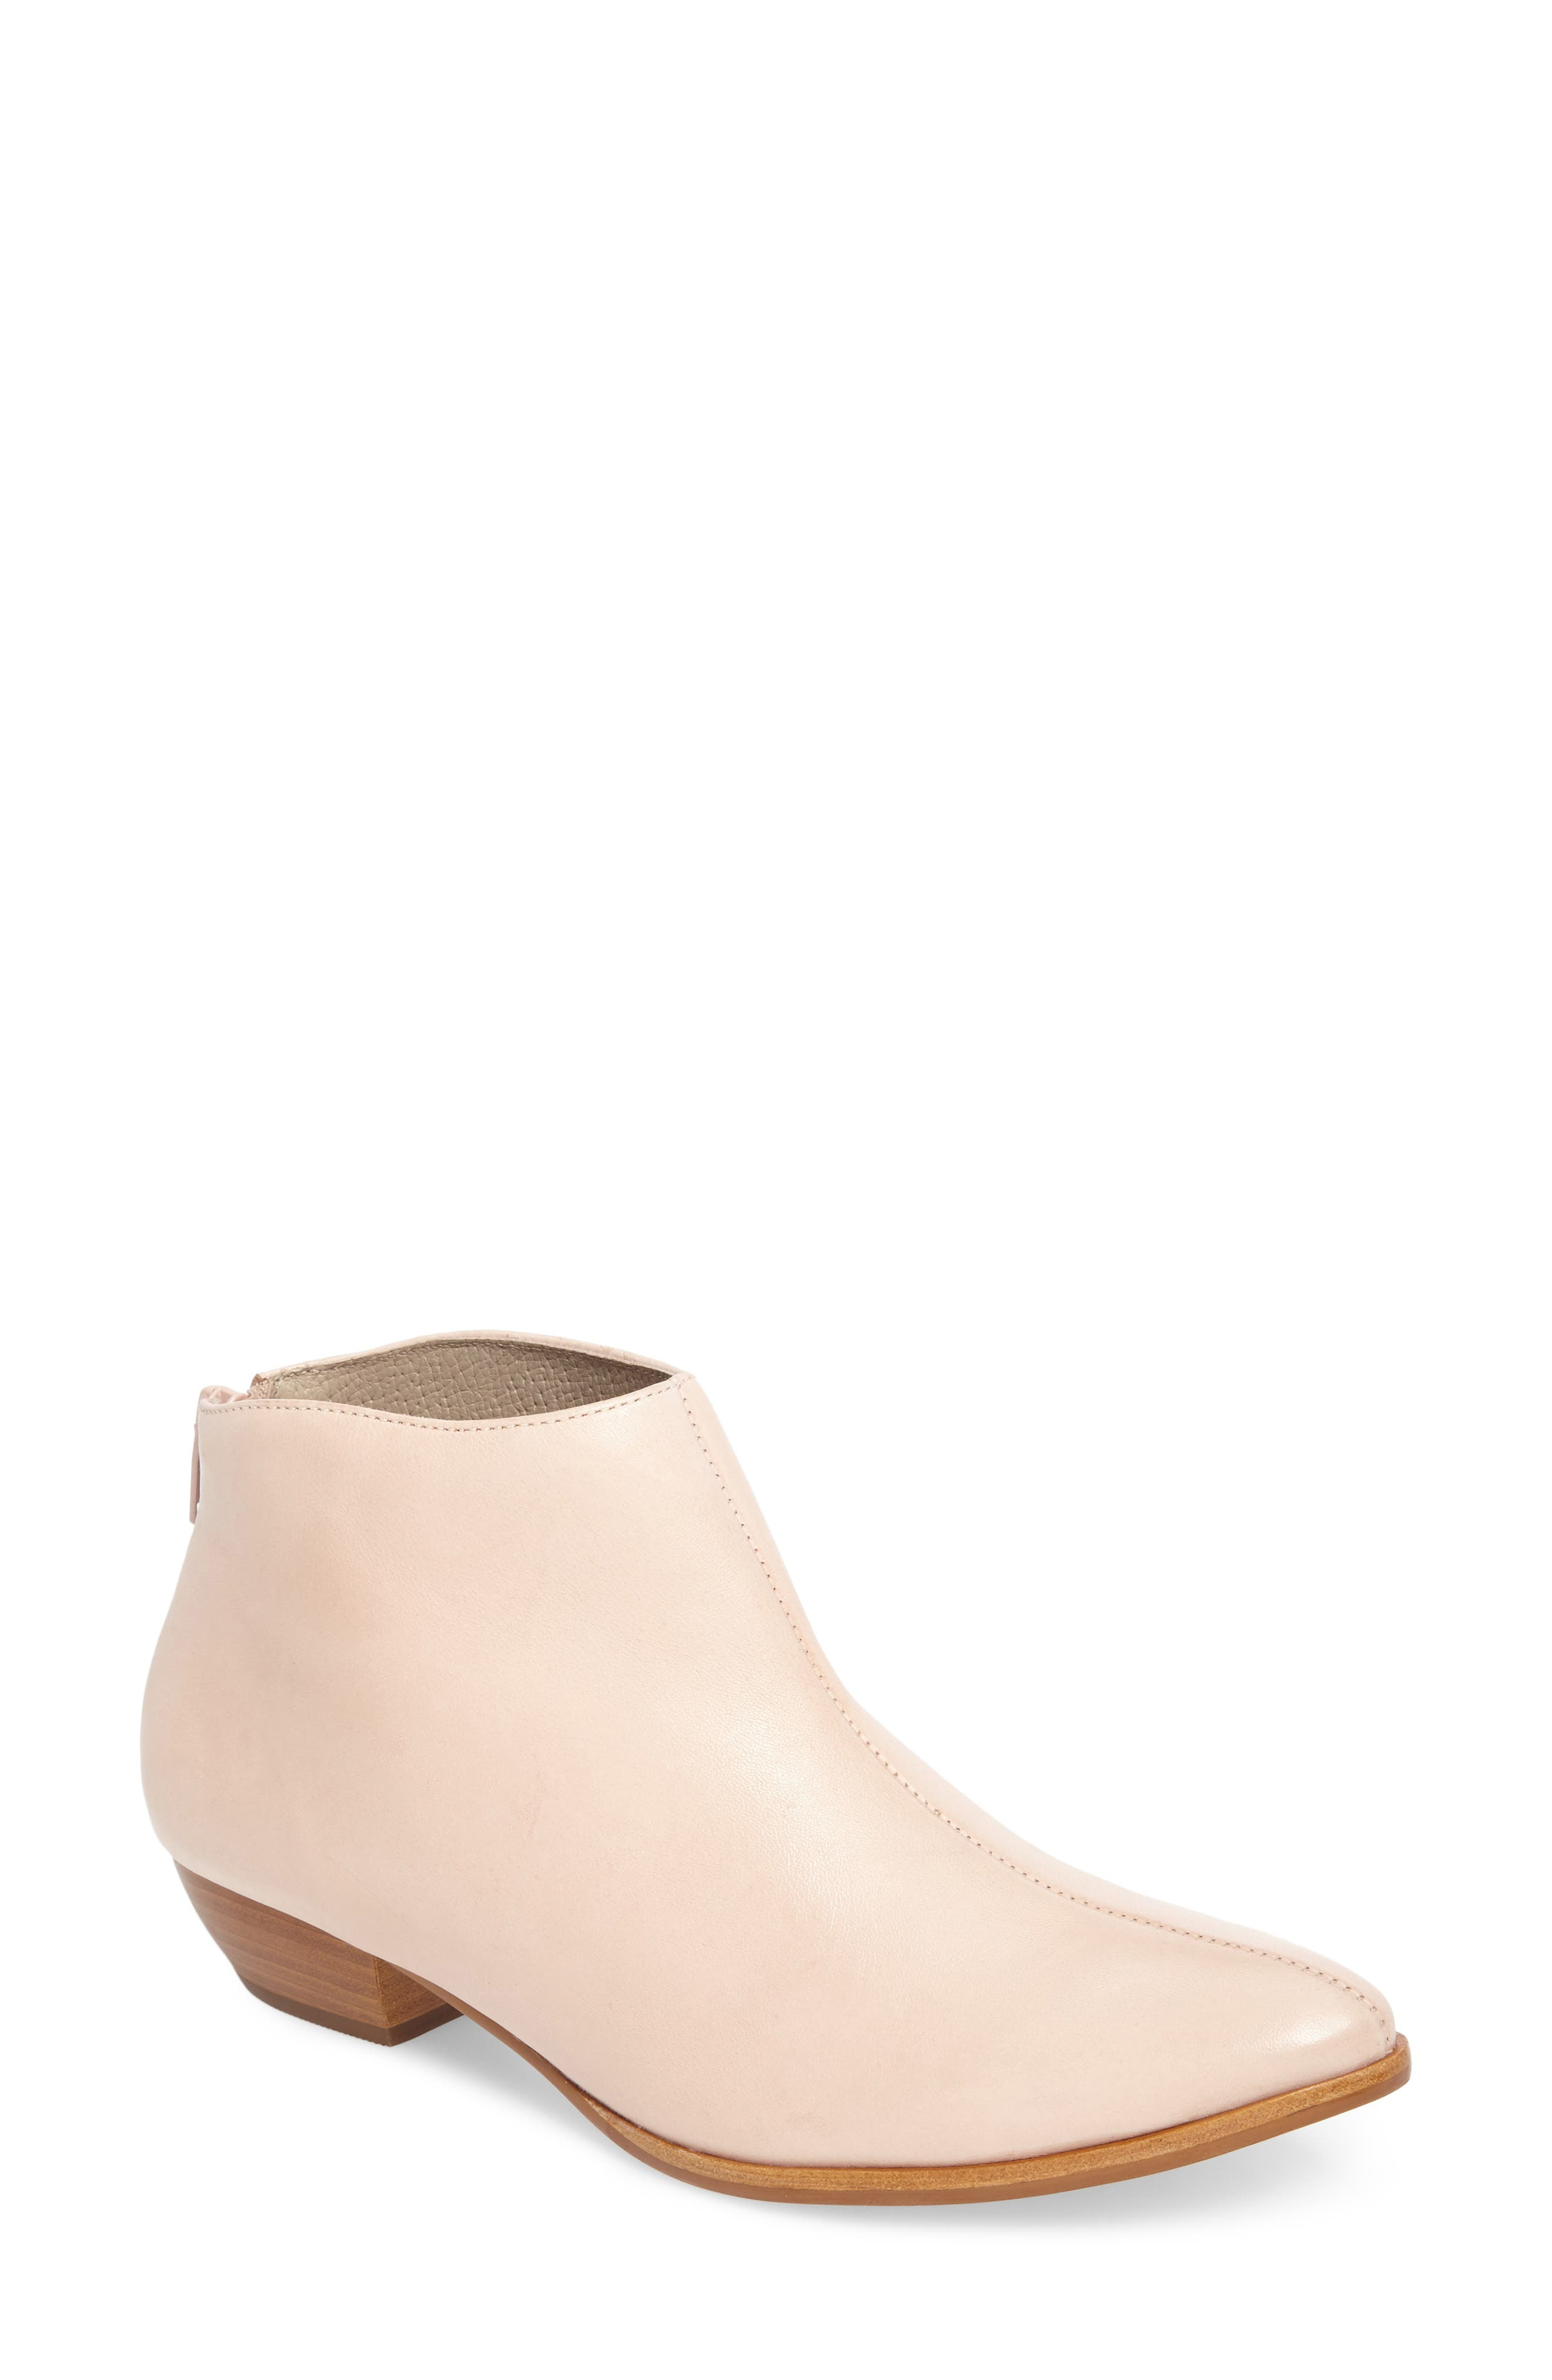 MATISSE Aida Low Bootie in Nude Leather